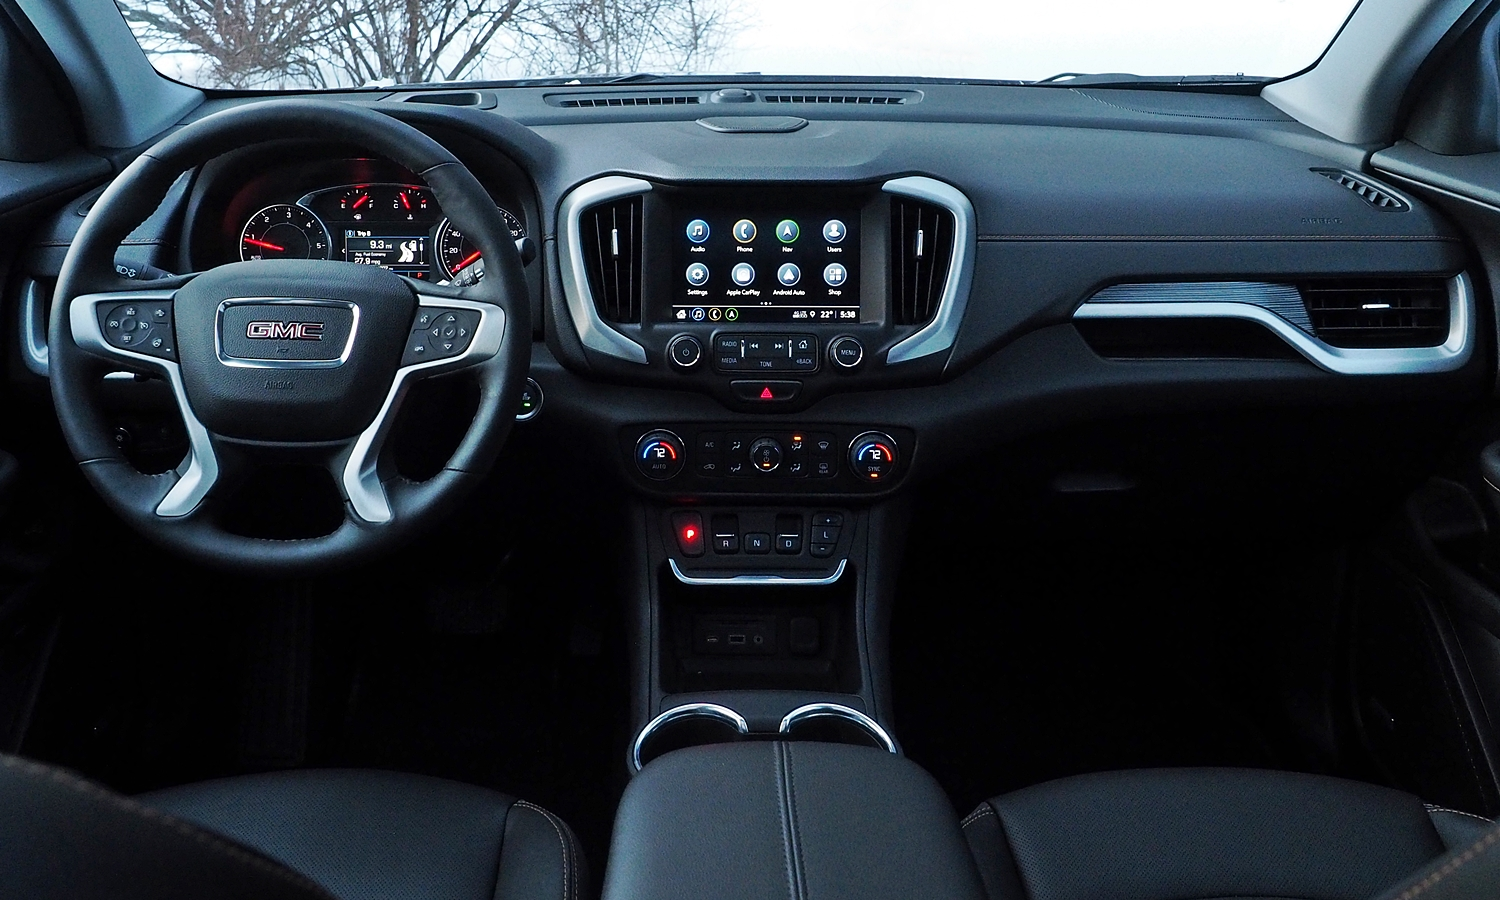 GMC Terrain Photos: 2018 GMC Terrain instrument panel full width